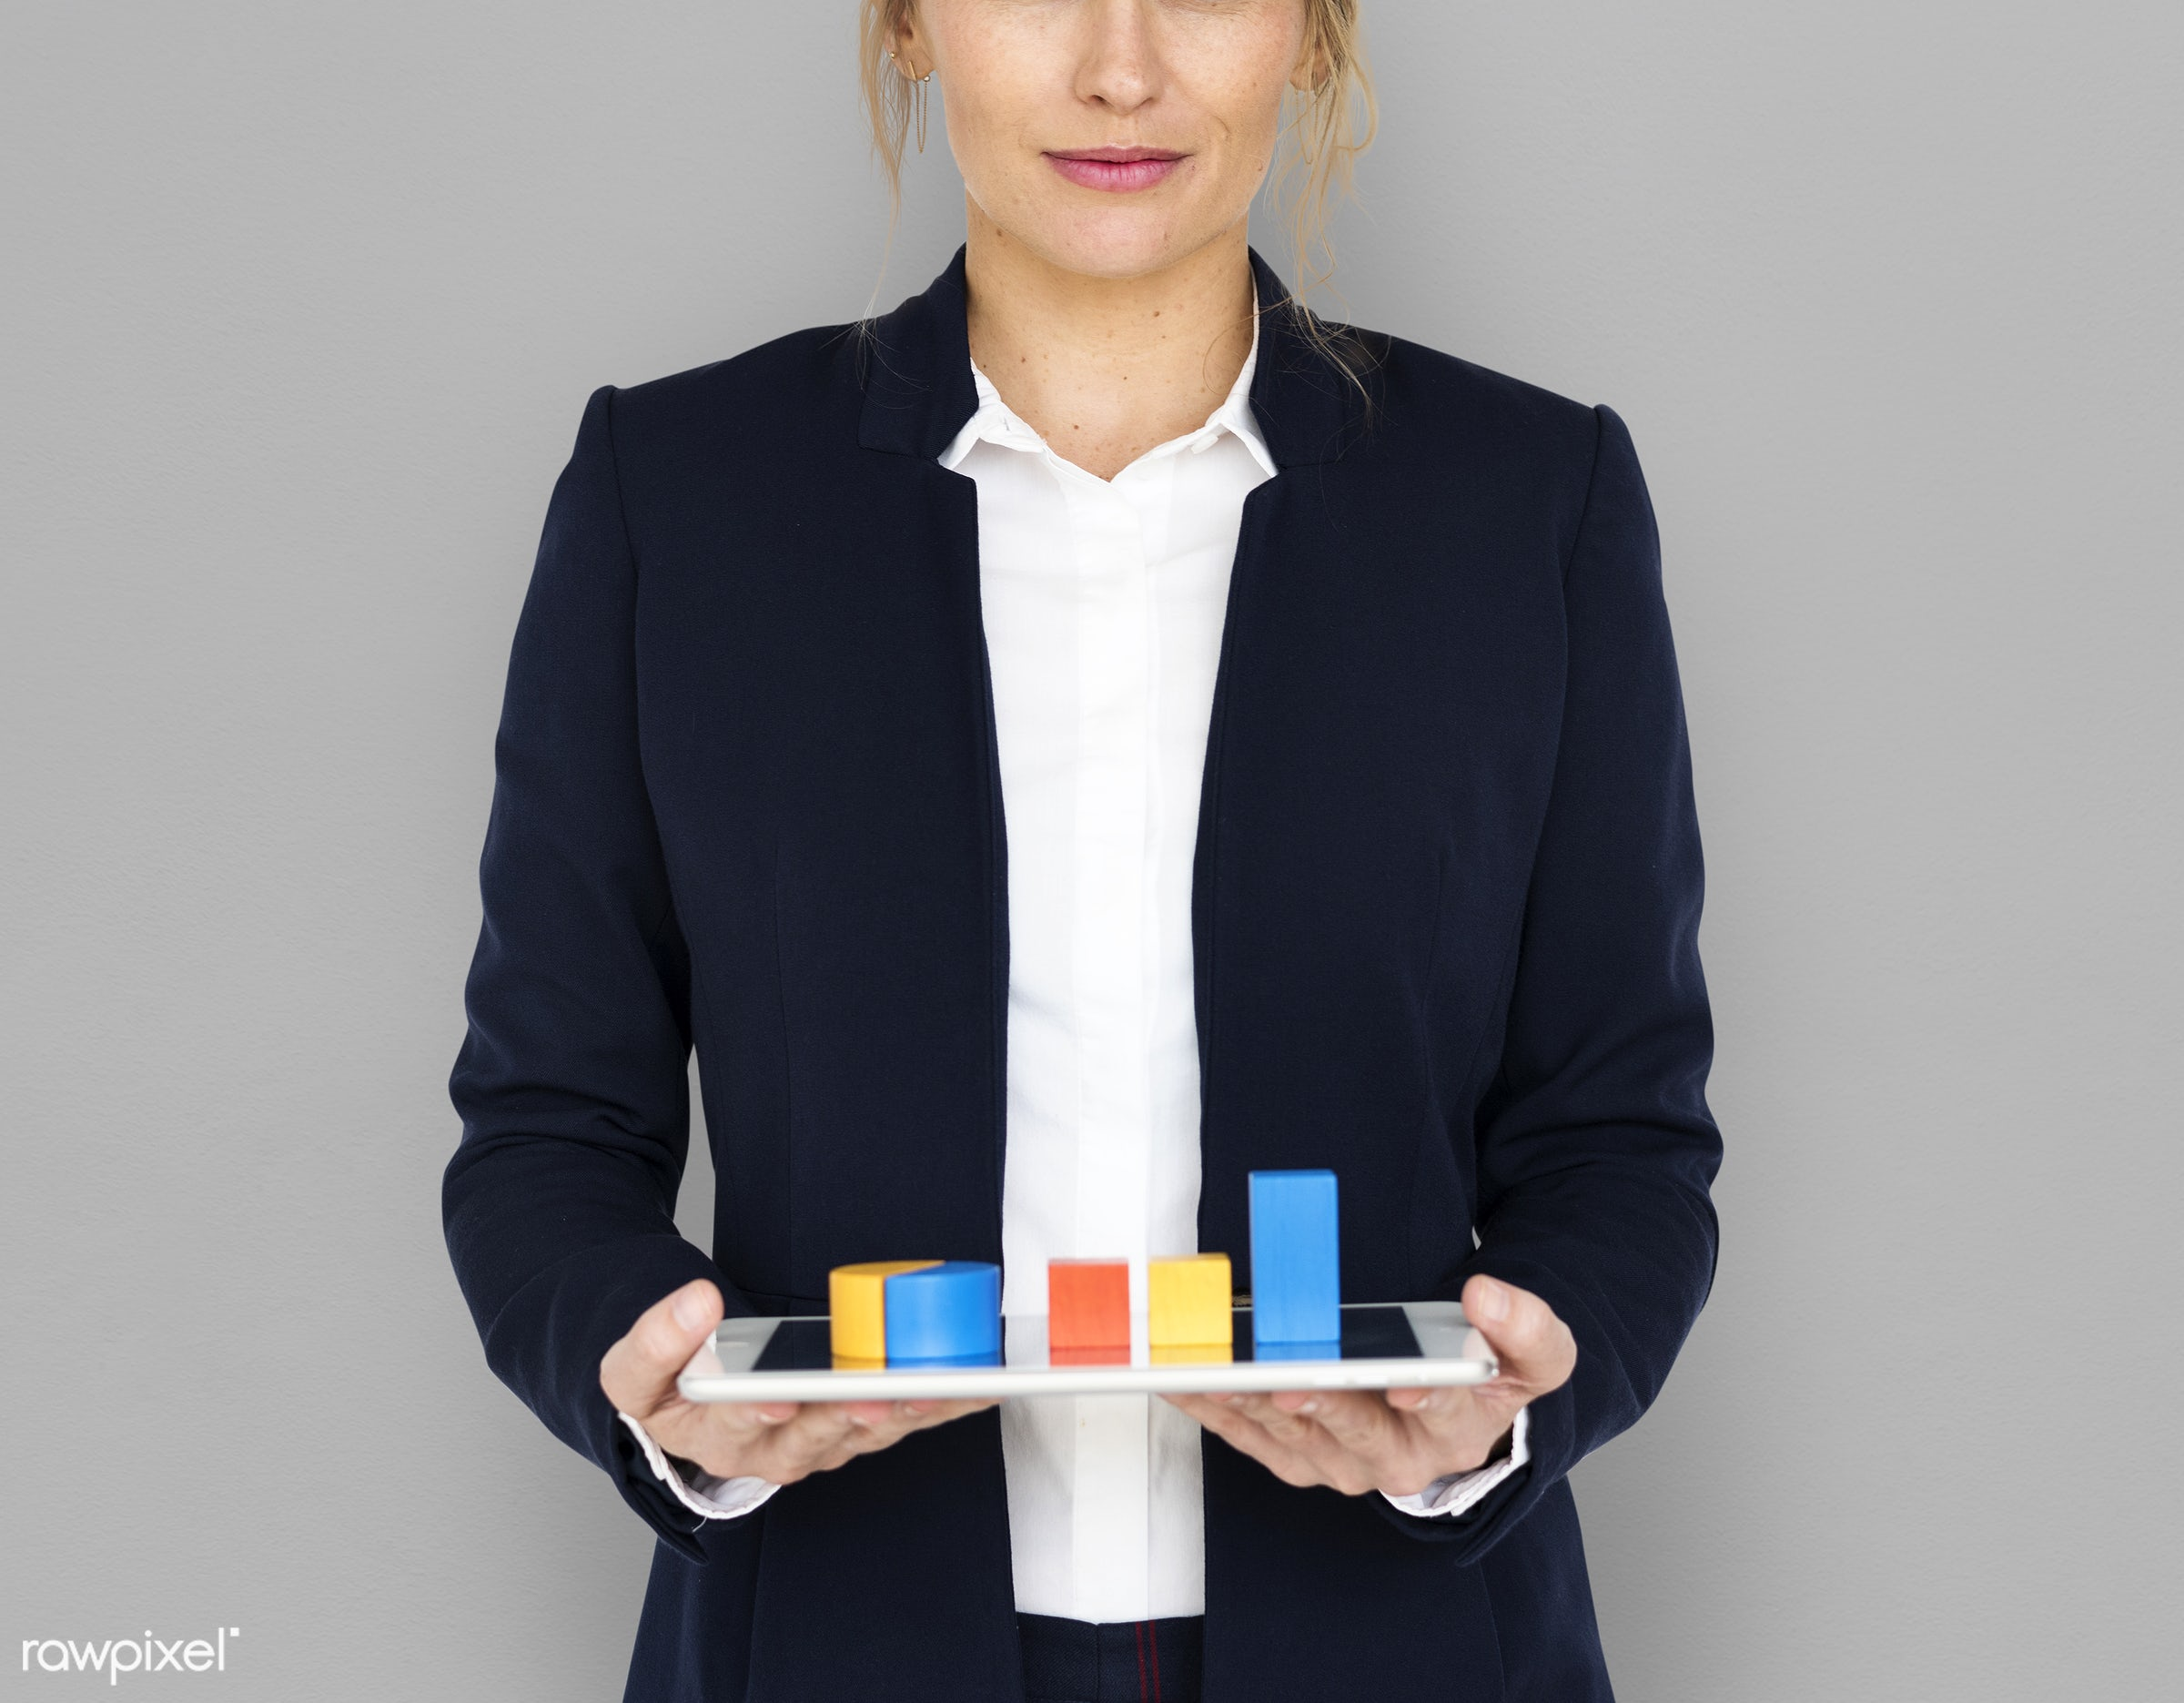 background, blonde, business, business chart, business wear, business woman, caucasian, chart, cheerful, expression, female...